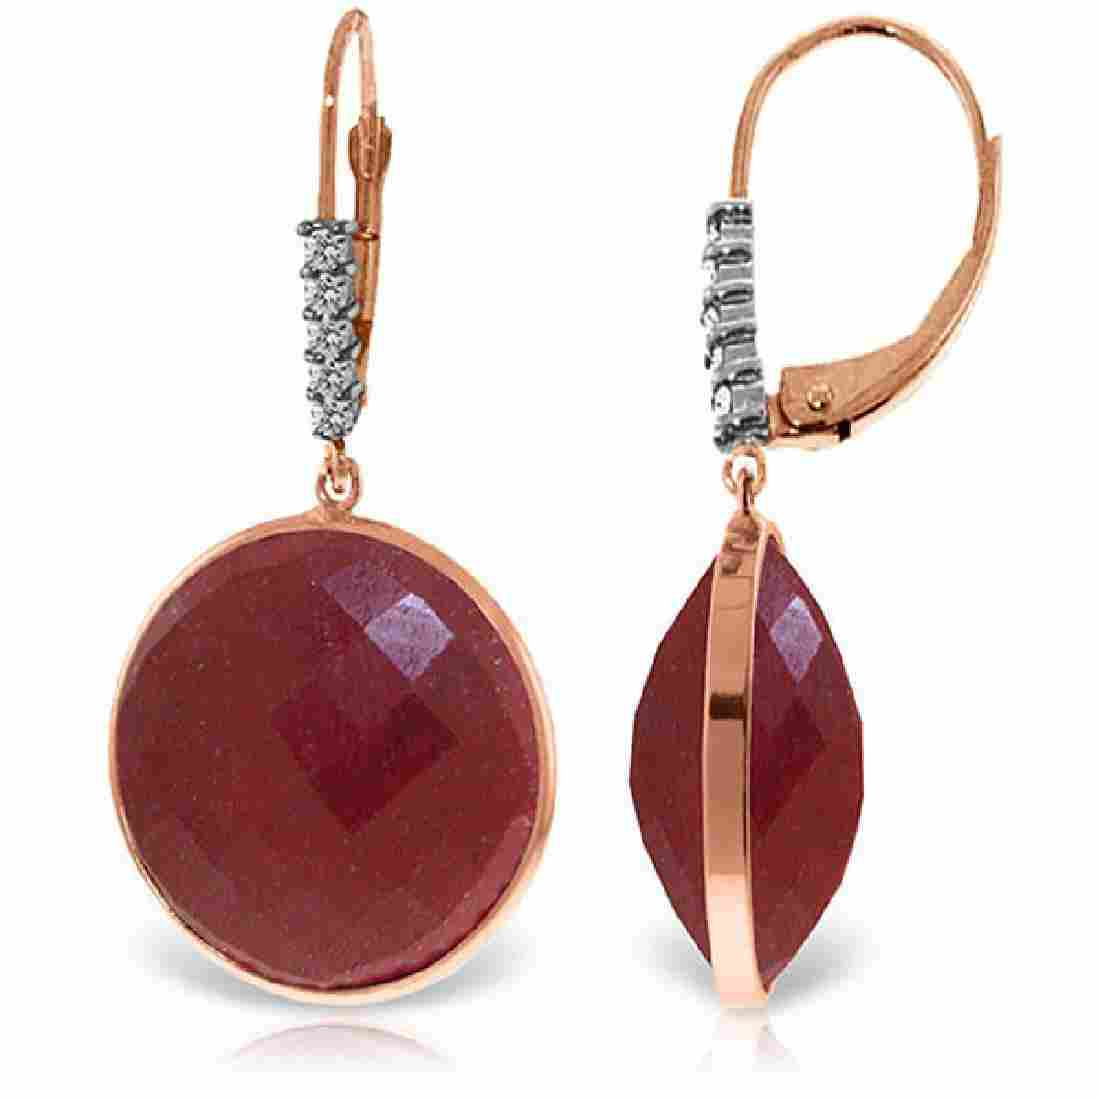 Genuine 46.15 ctw Ruby & Diamond Earrings Jewelry 14KT